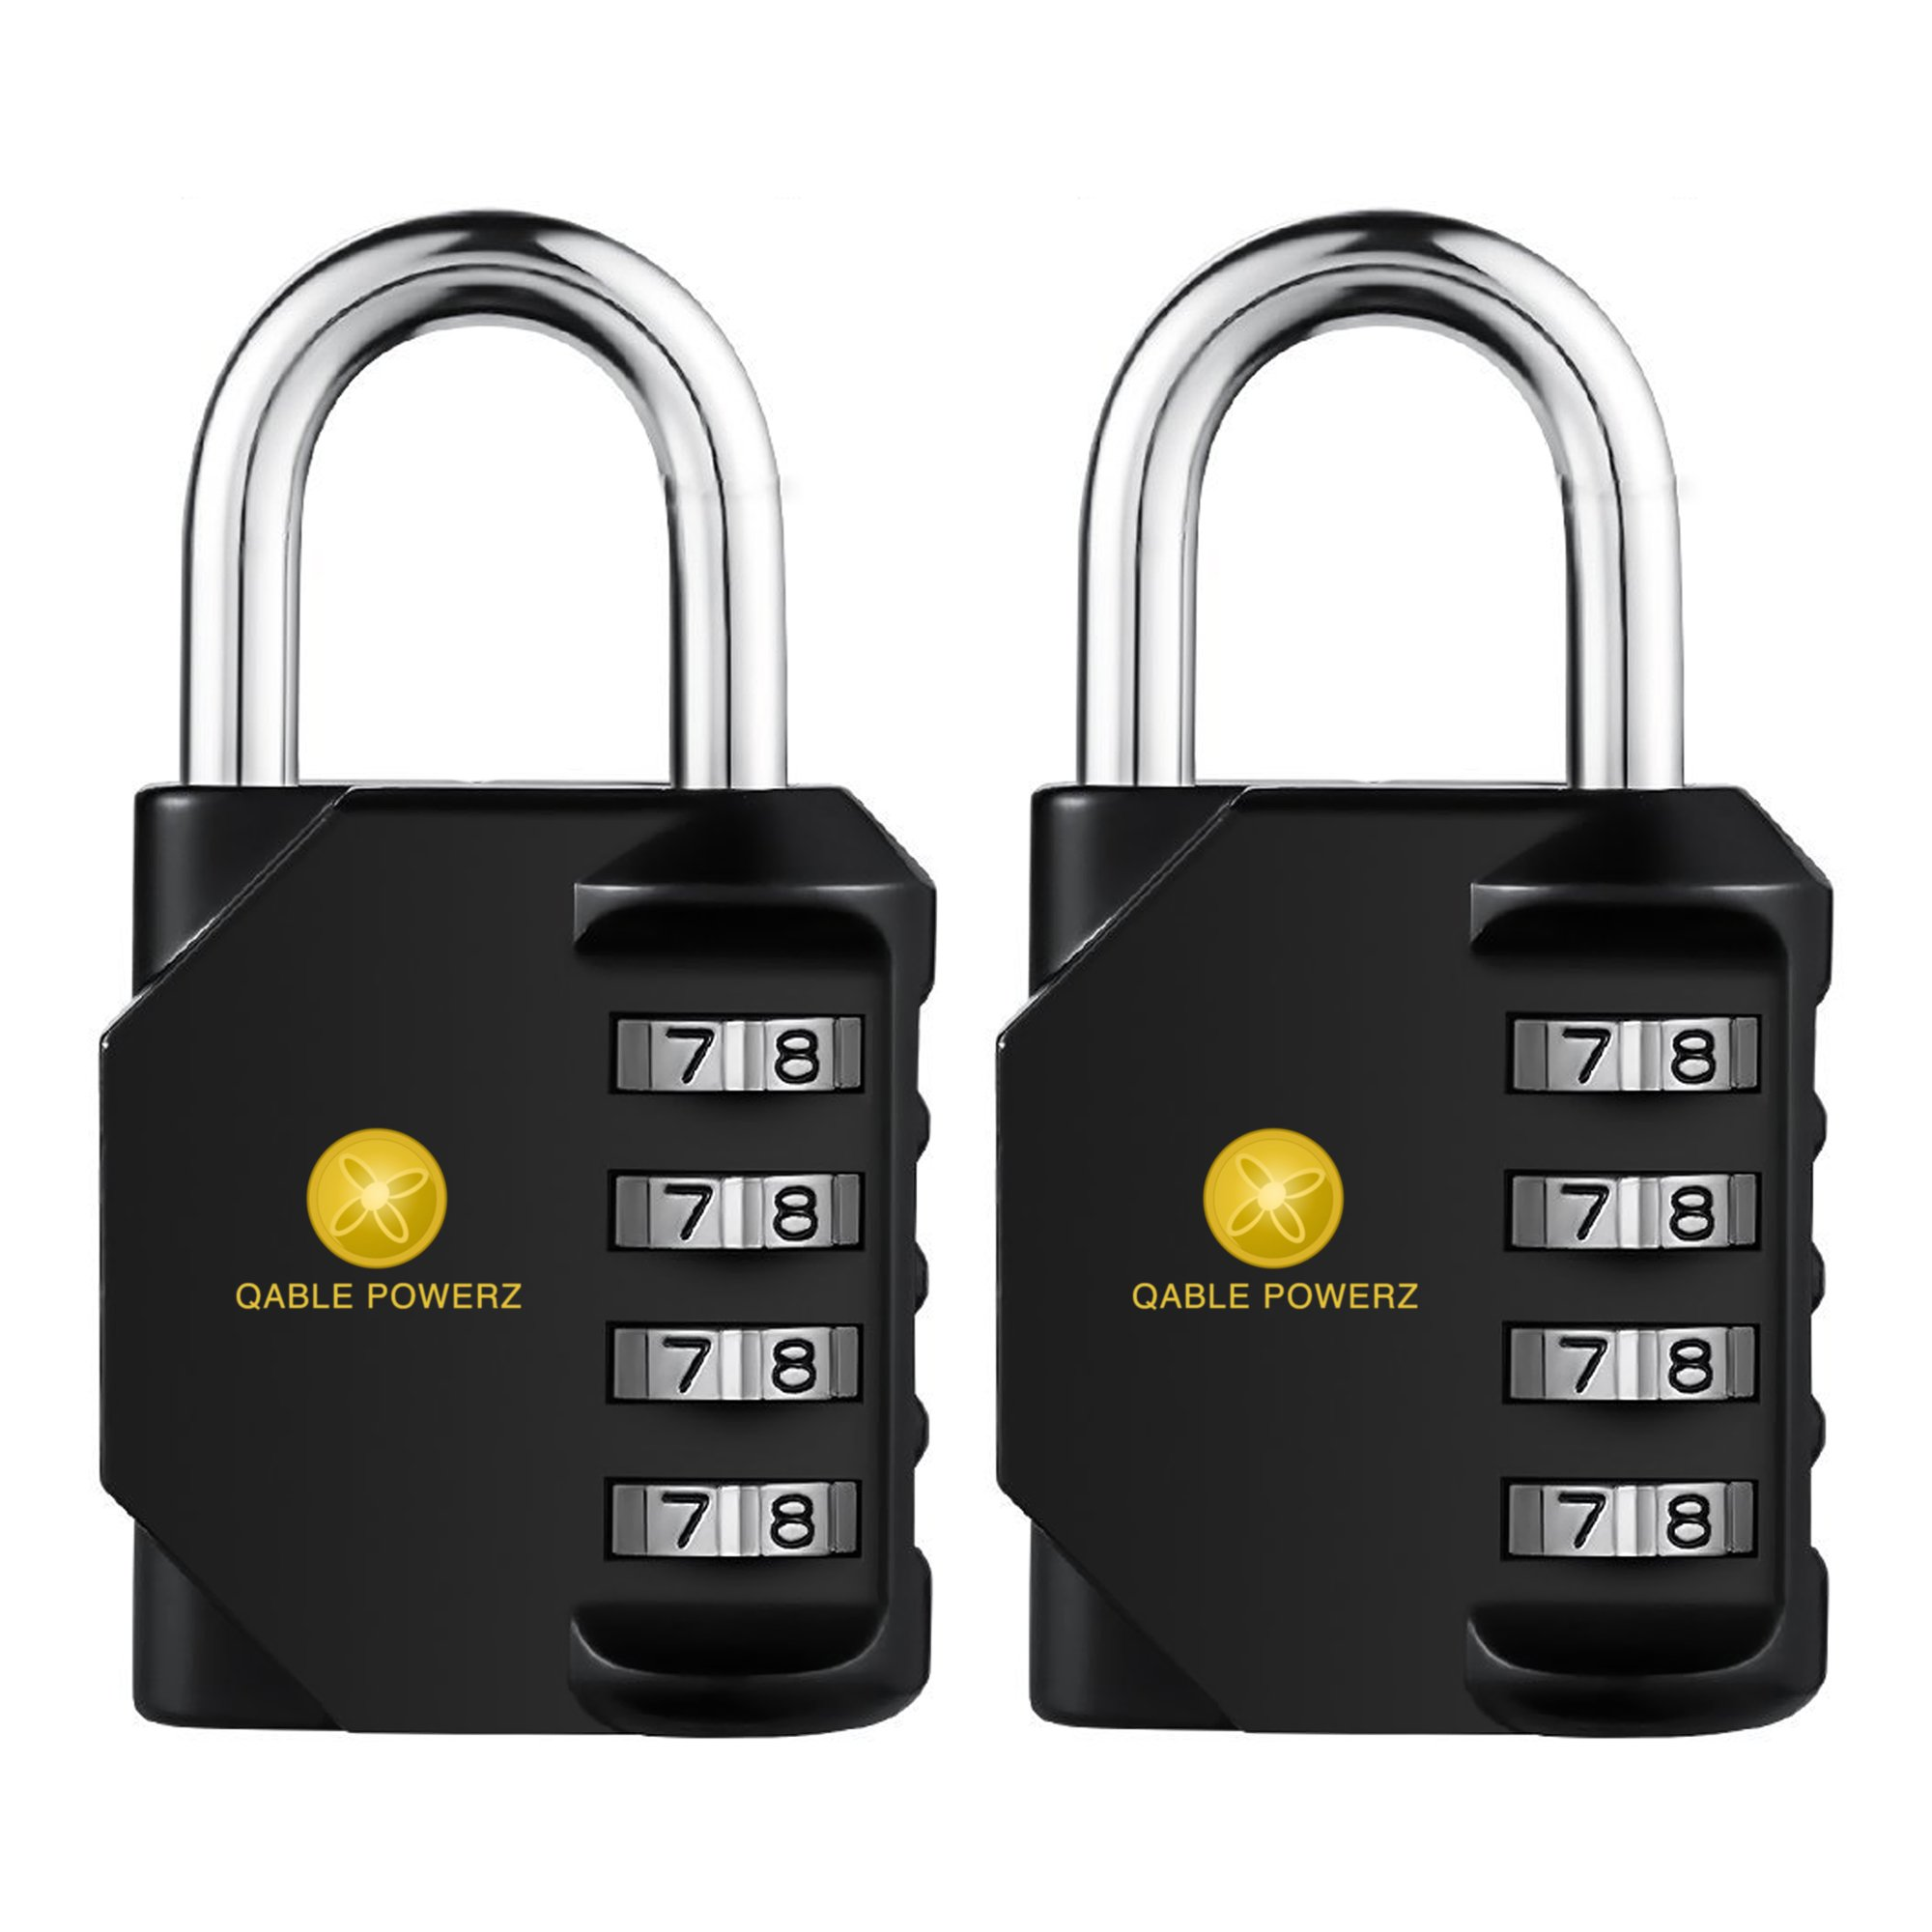 Combination Lock, Pack of 2 Heavy Duty 4 Digit Anti Rust Weather-Proof Key Less Padlock Metal & Plated Steel Combination Lock for Home, School Gym Locker, Fence, Toolbox, Cabinet (Black)